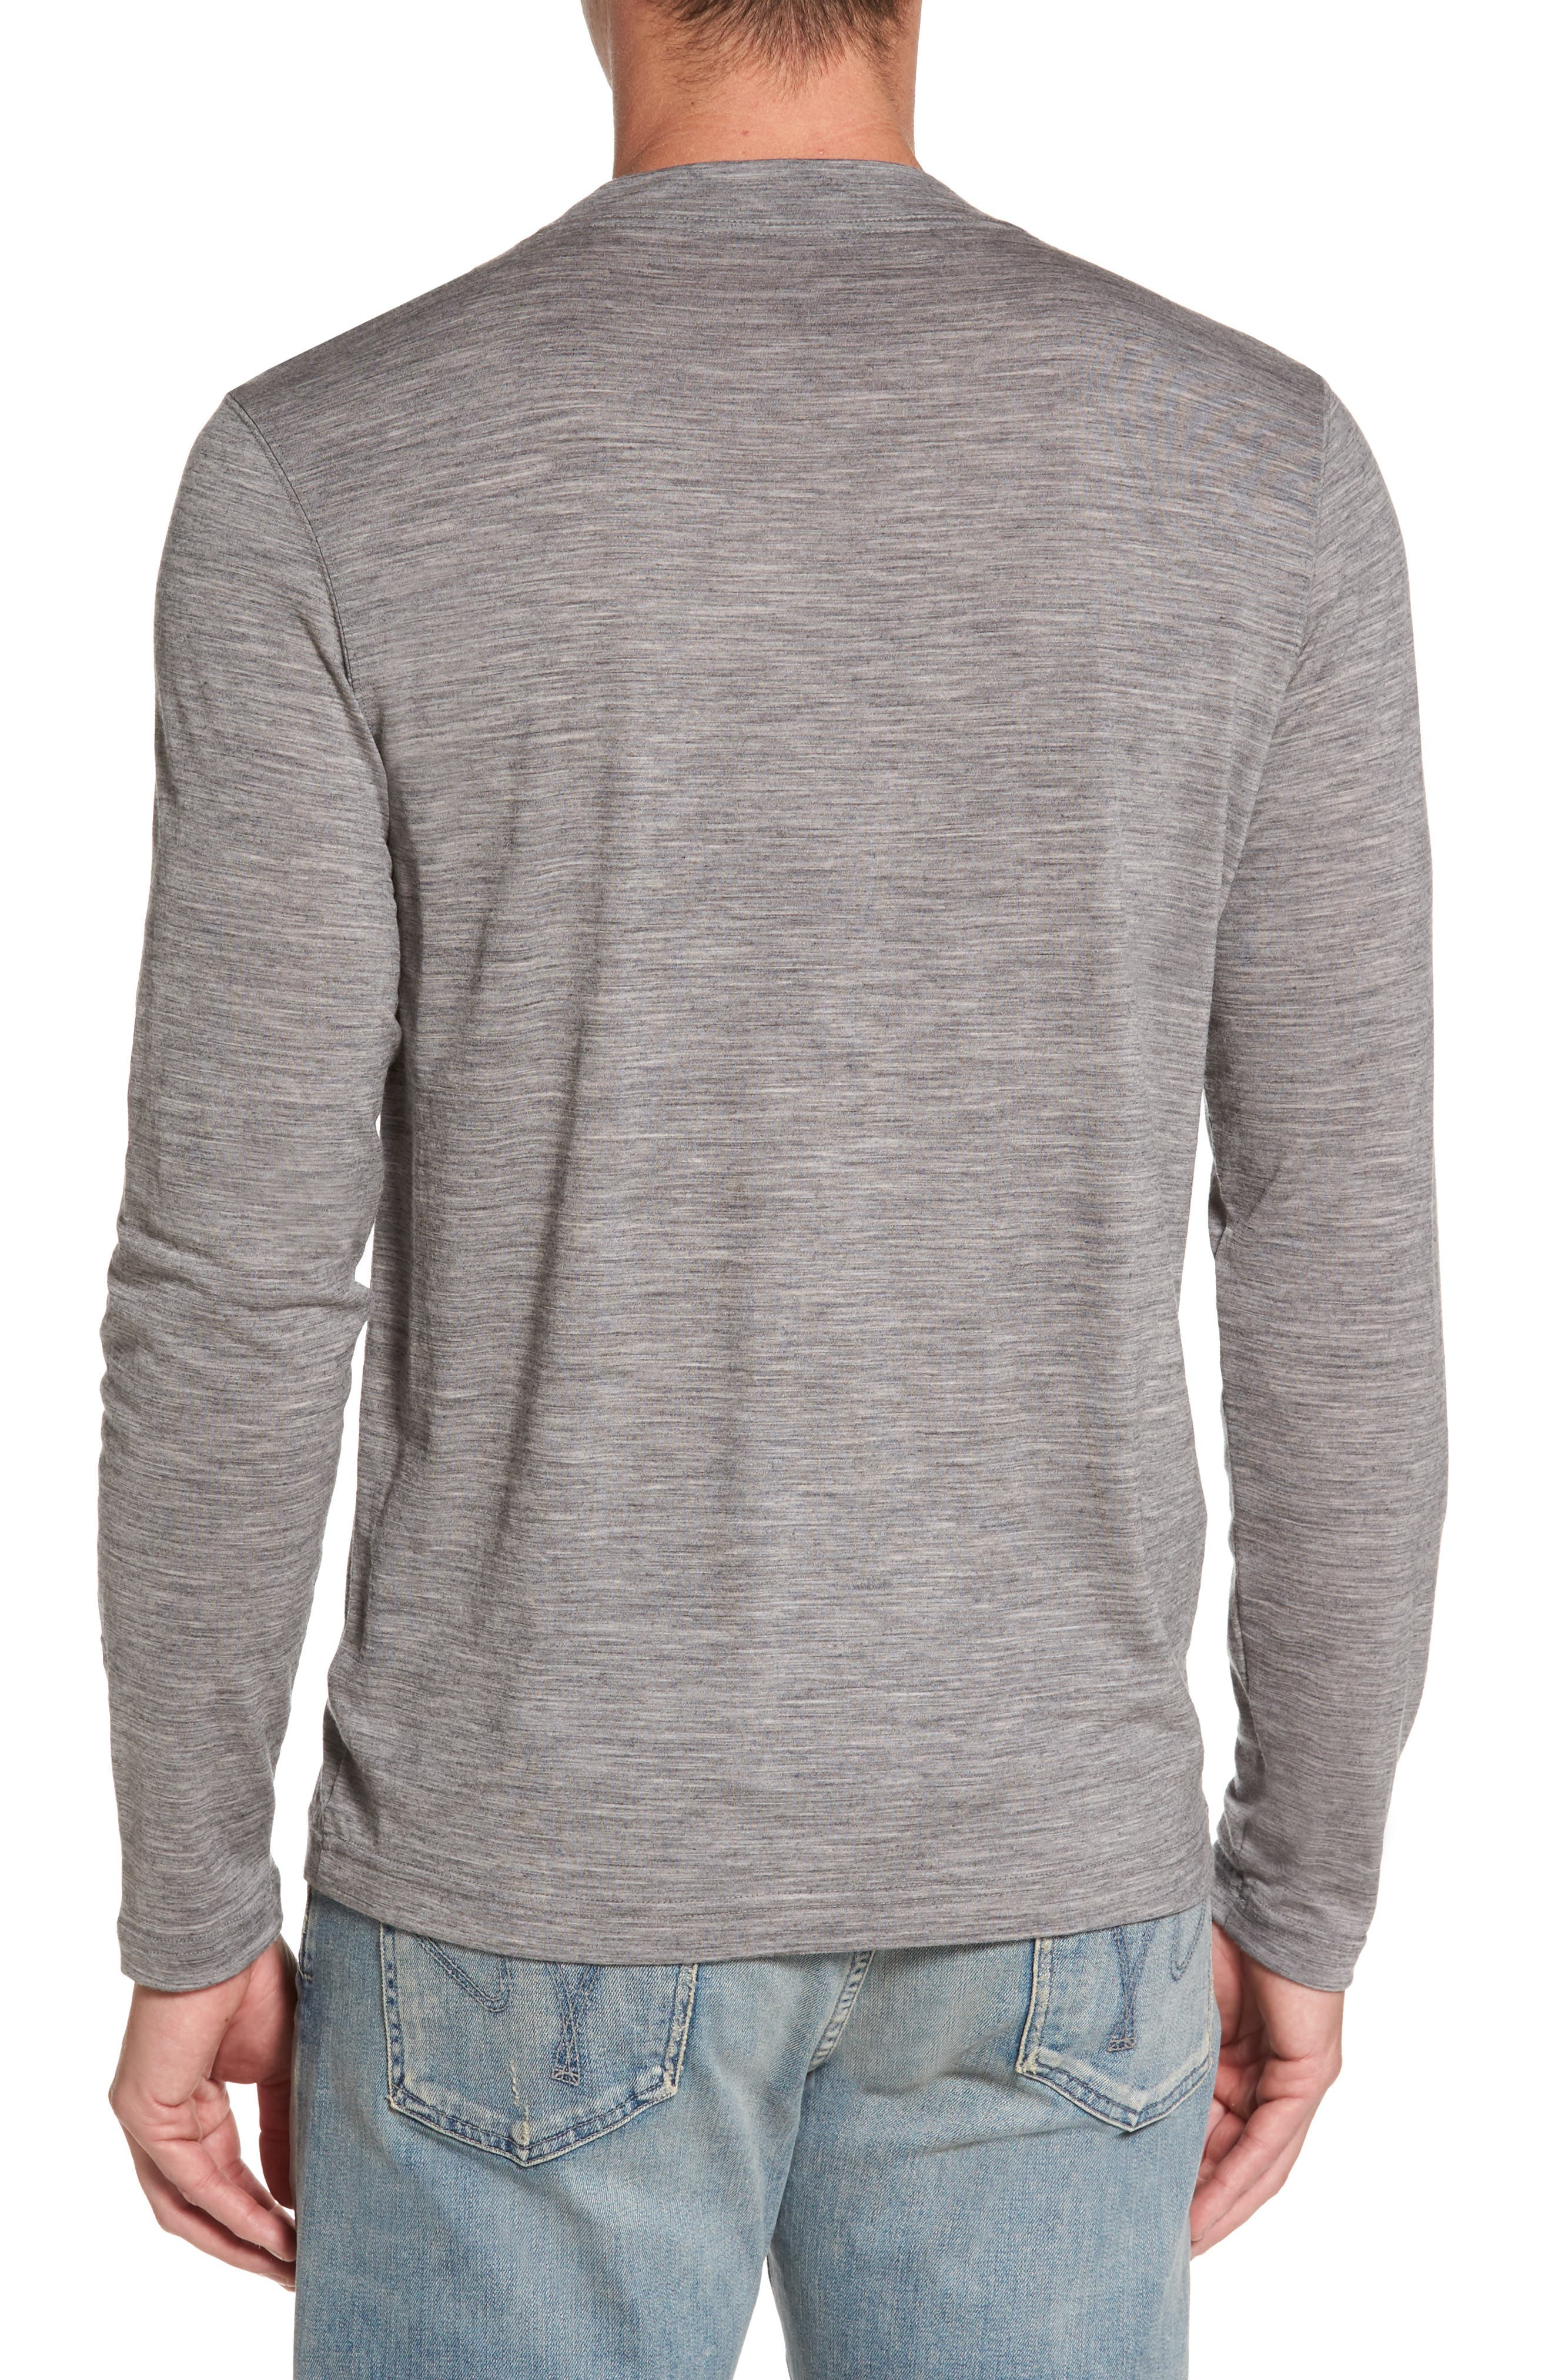 Odyssey Merino Wool Blend Henley,                             Alternate thumbnail 2, color,                             Stone Grey Heather